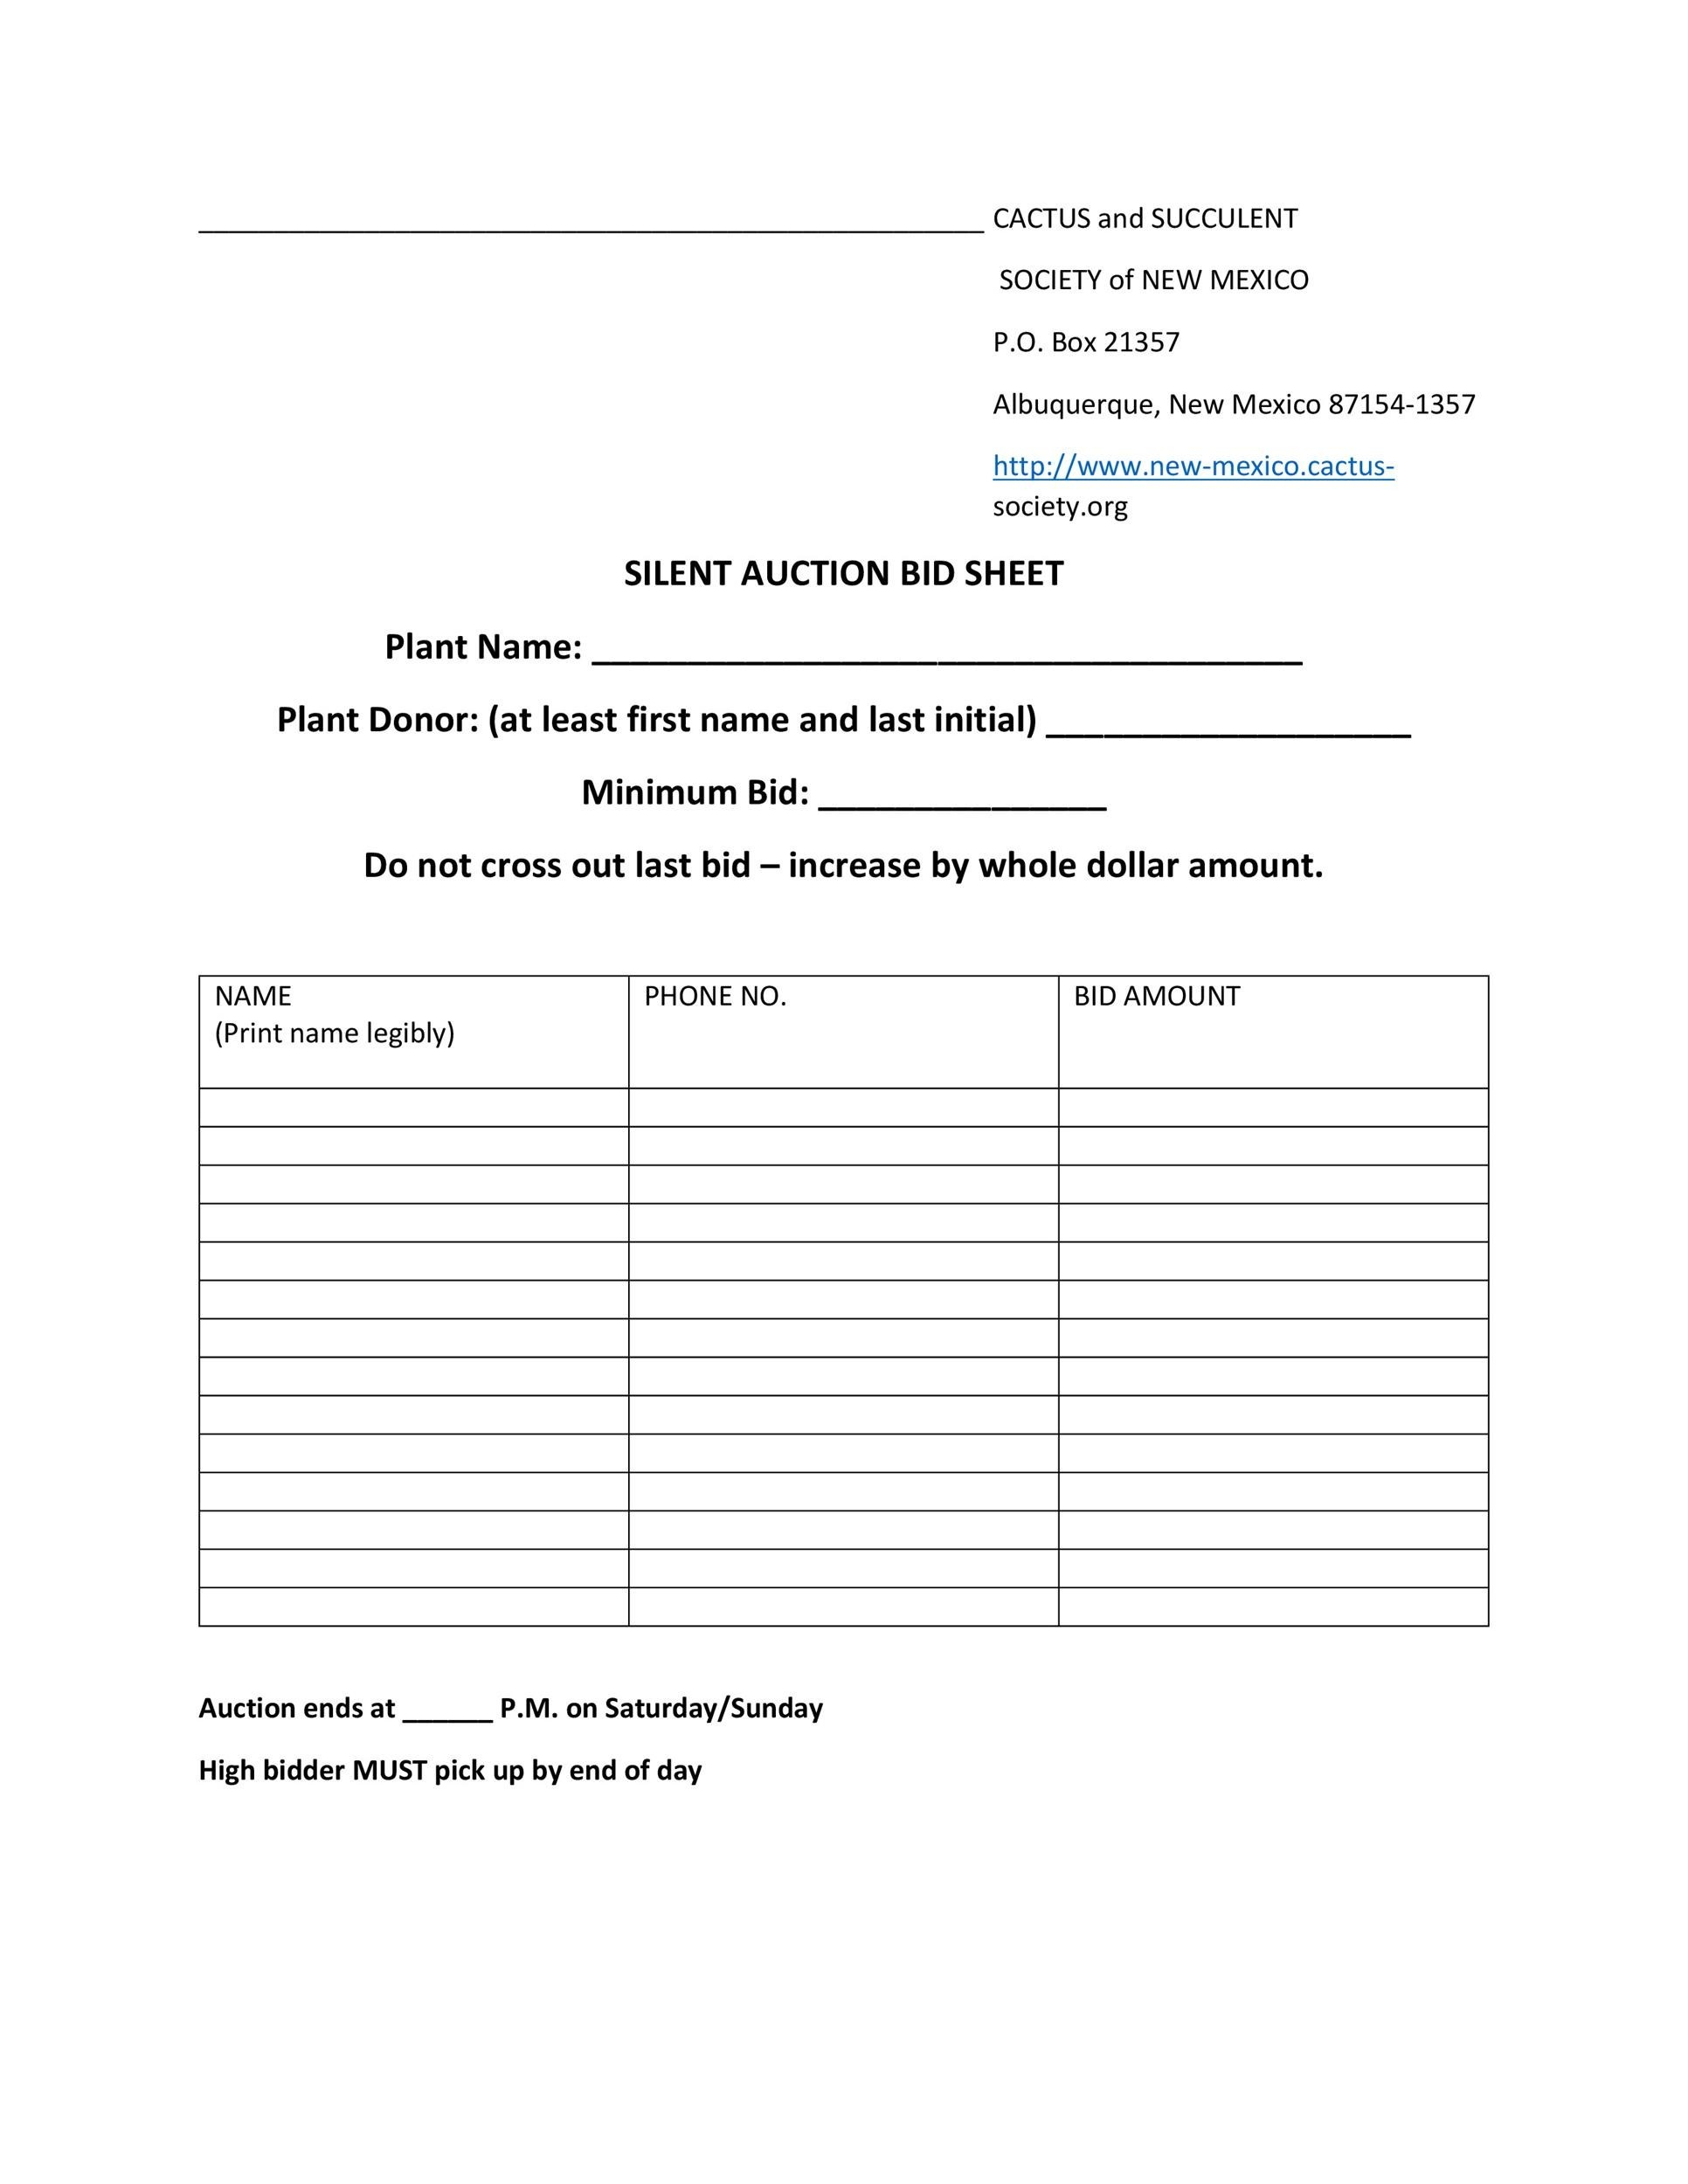 Silent Auction Bid Sheet Templates Word Excel  Template Lab